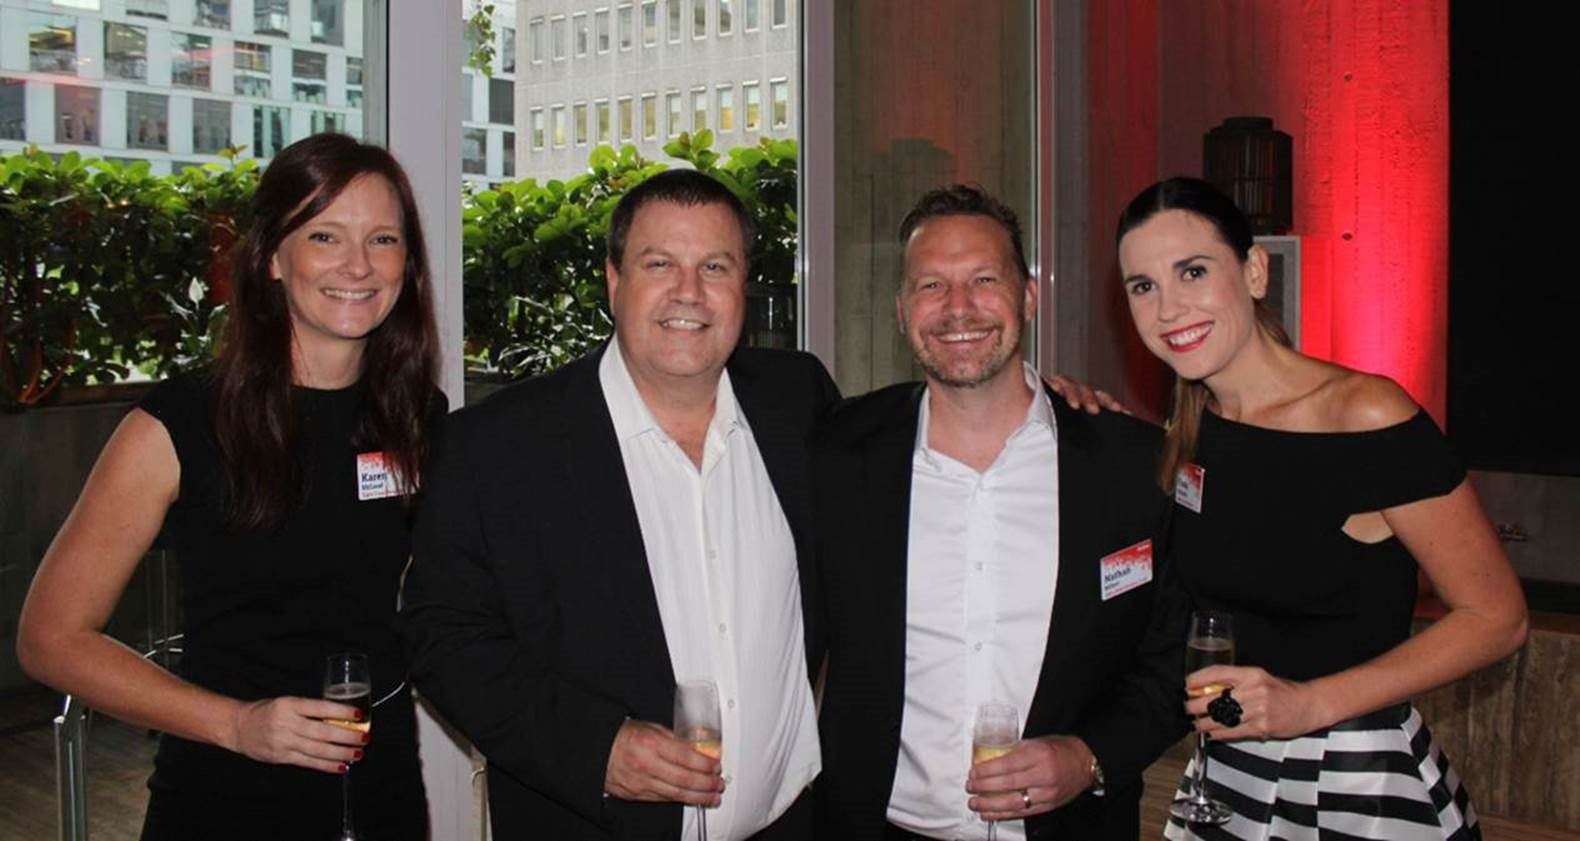 Sabre staff and friends in the travel industry gathered together to welcome in the 2016 Christmas season.